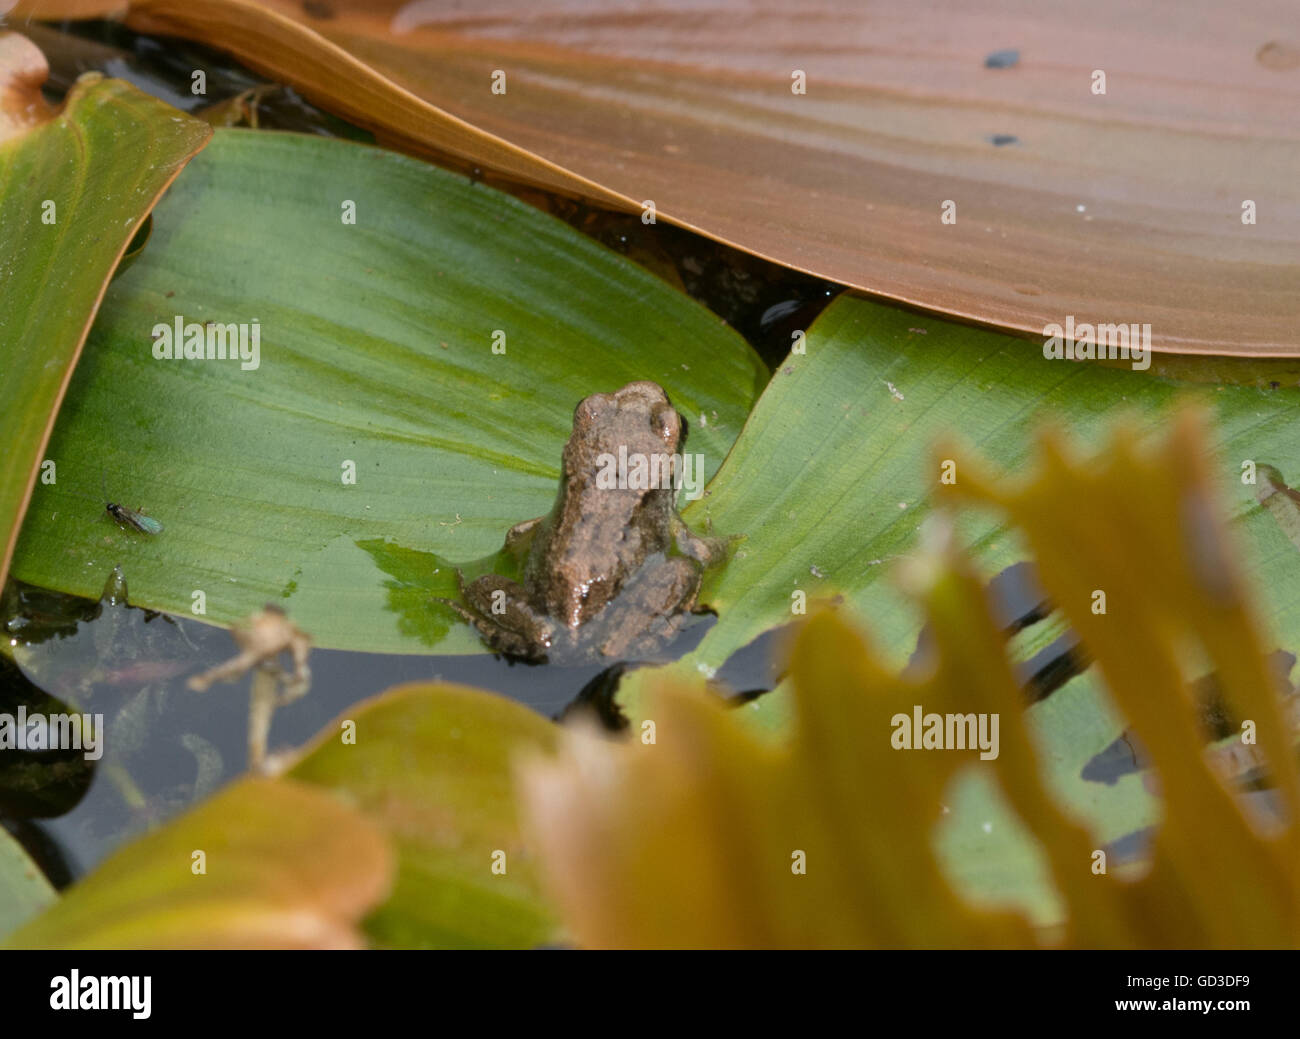 Froglet or young common frog (Rana temporaria) in pond, UK Stock Photo